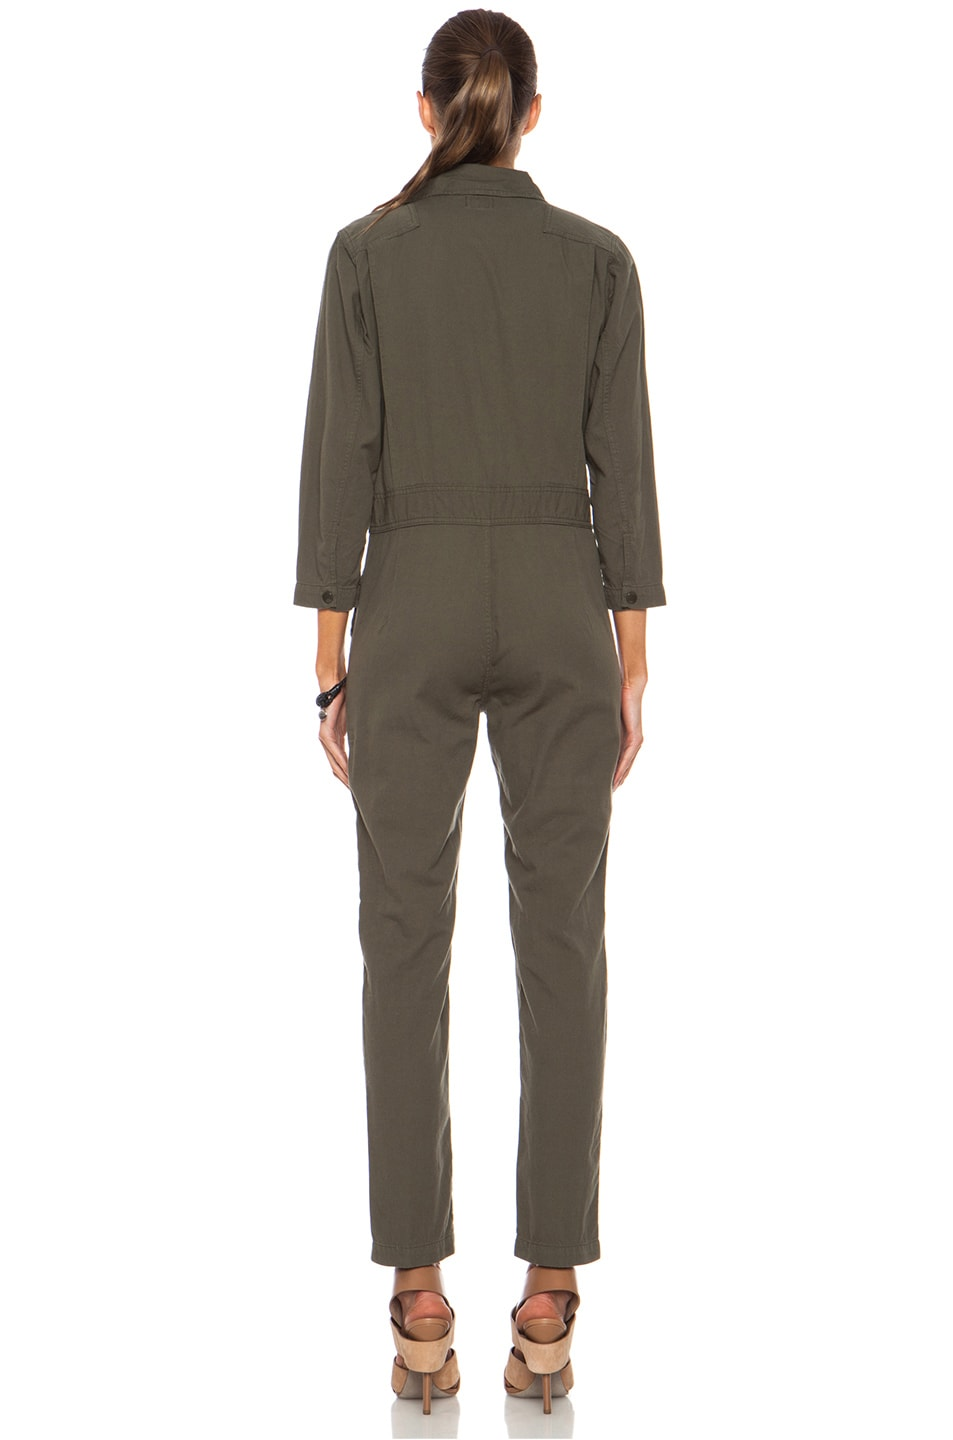 Image 4 of NLST Cotton Flightsuit in Olive Drab